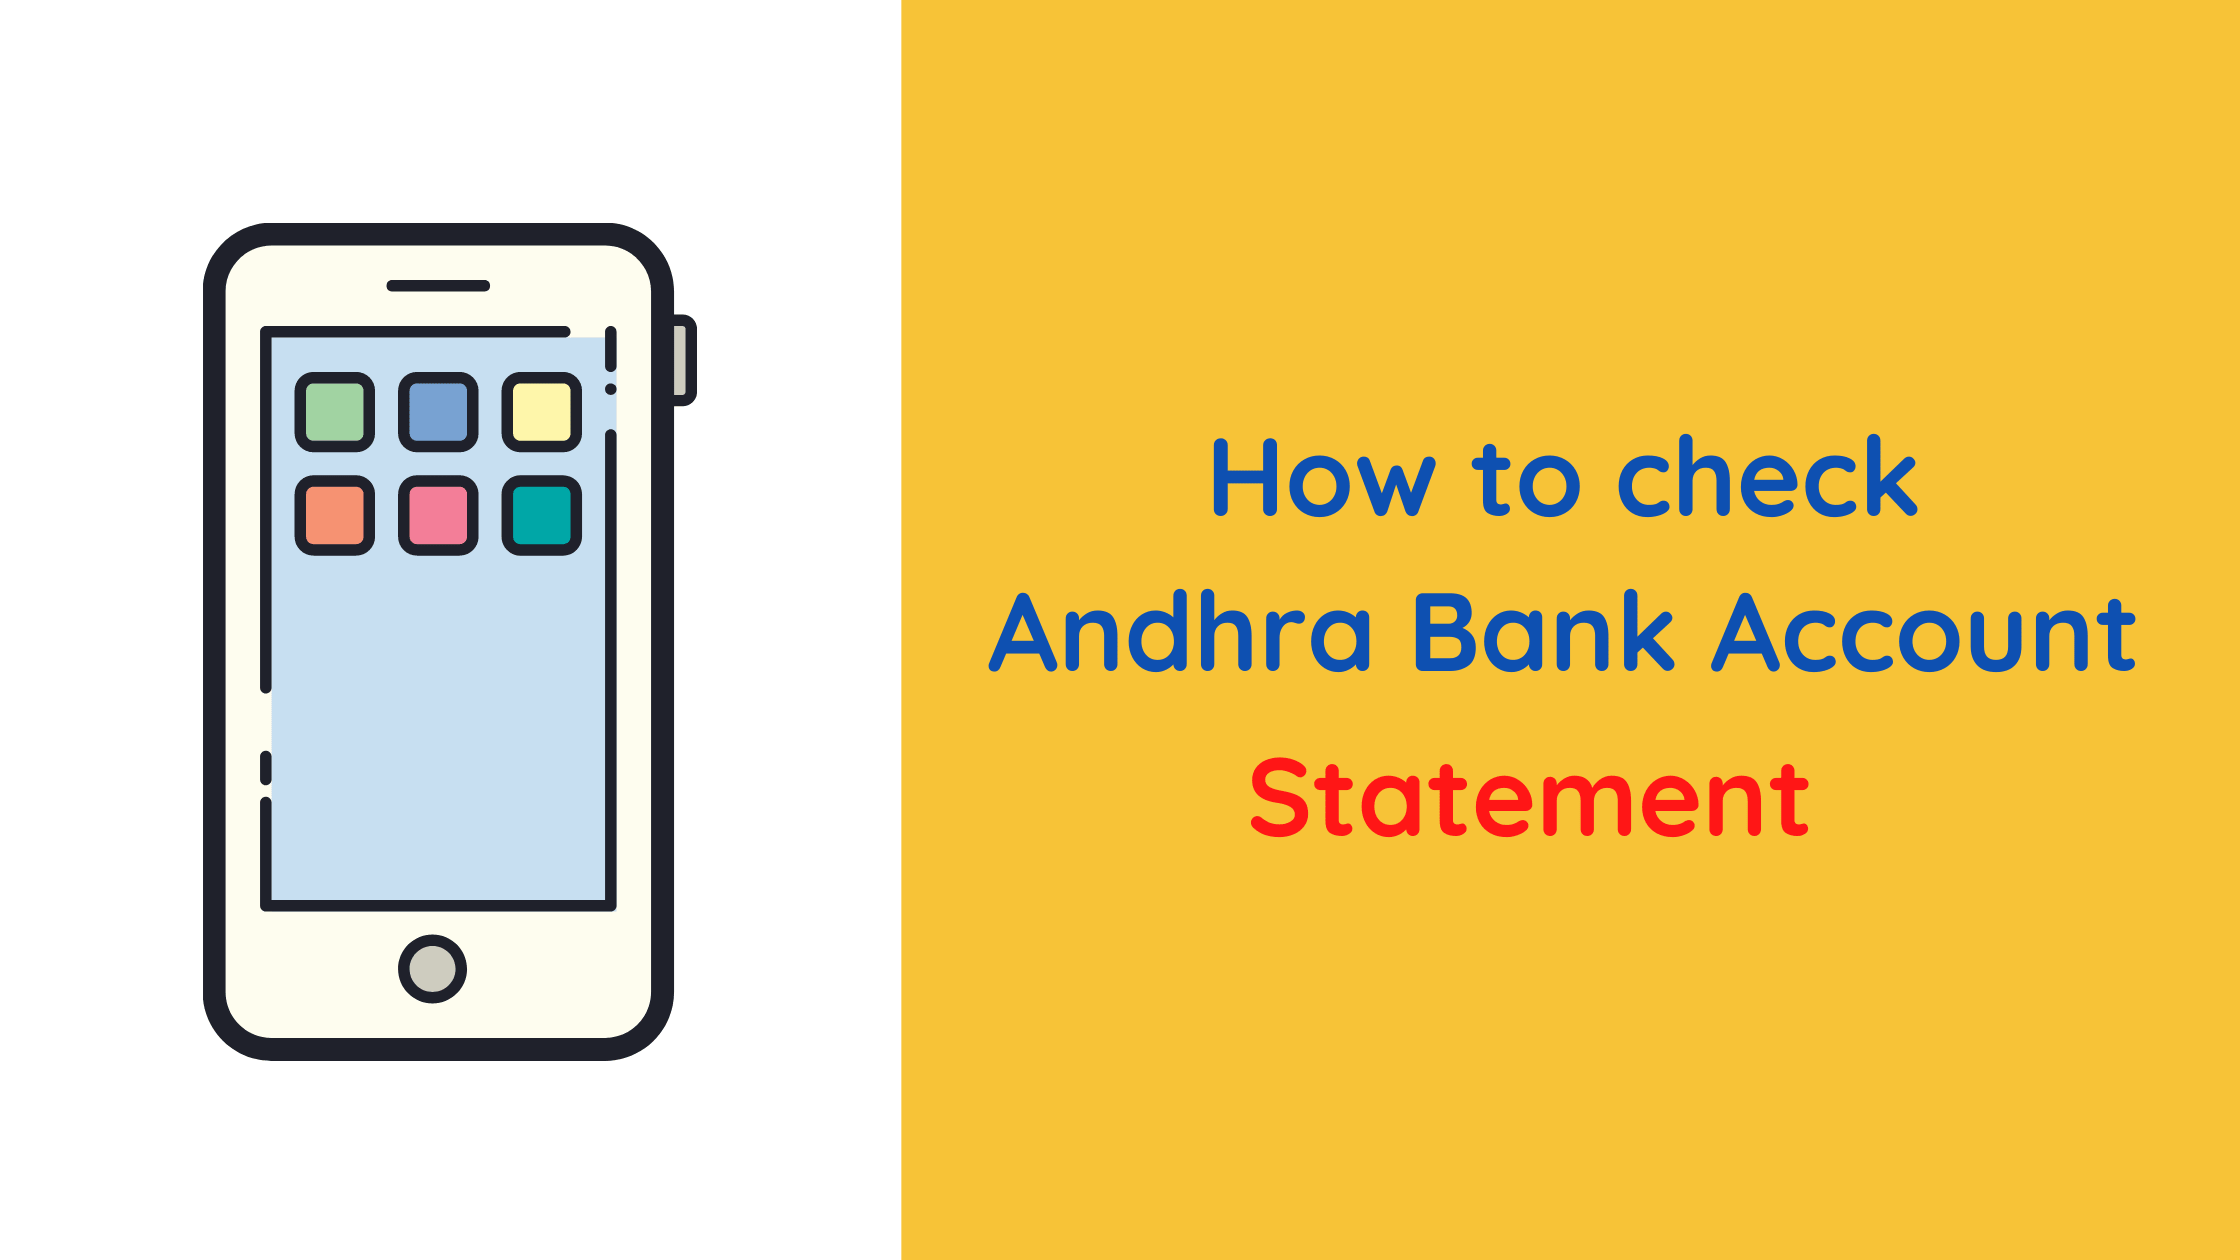 Andhra Bank statement